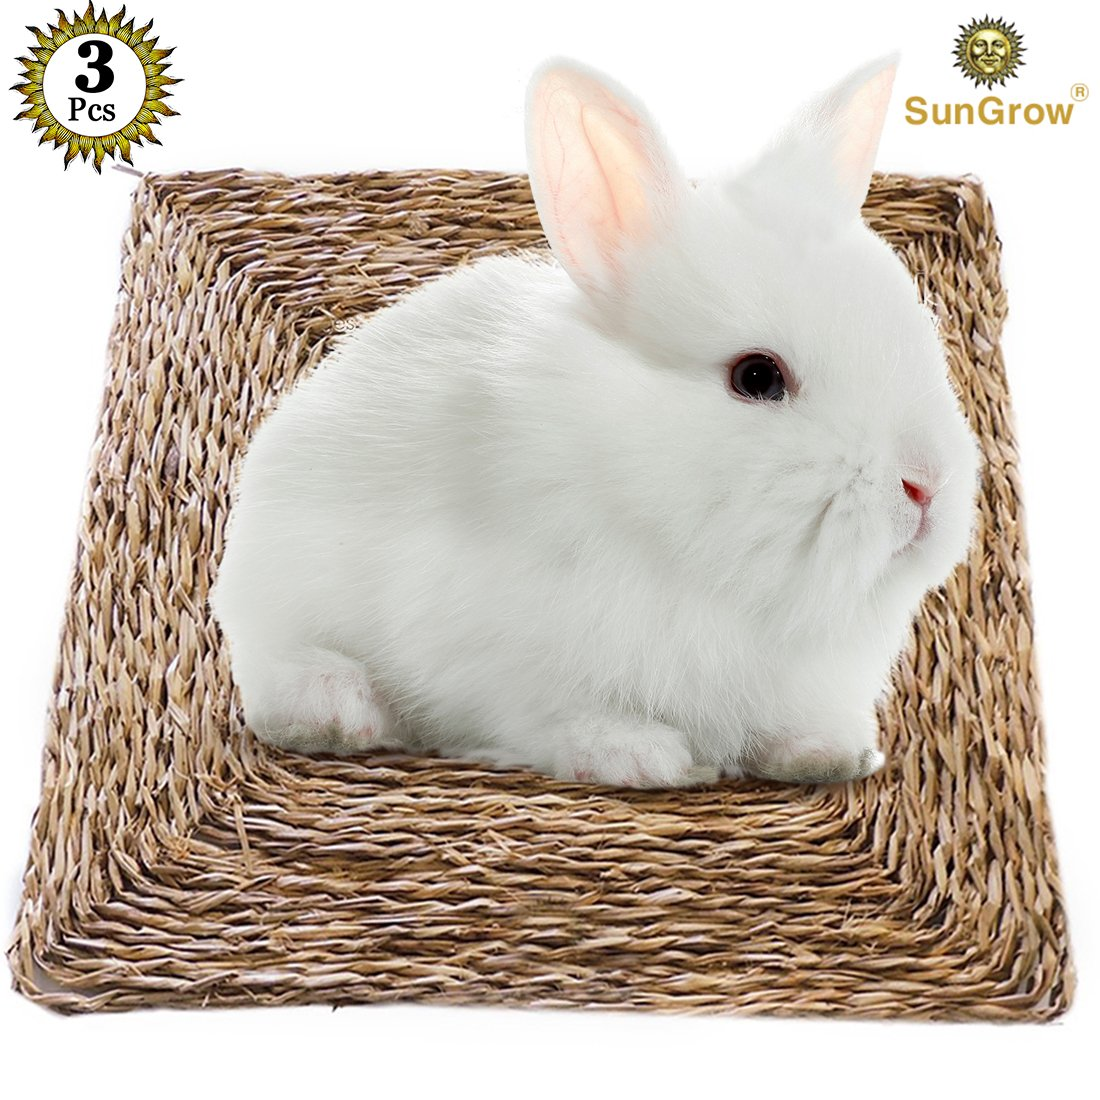 3 Natural Seagrass Rabbit Mats - Handmade Woven Play Mat - Safe & Edible Chew Toy - Treat Bunny's Sore Hocks - Protect Paws from Wire Cage - Allergen-free, Water-resistant, 100% Natural Beds